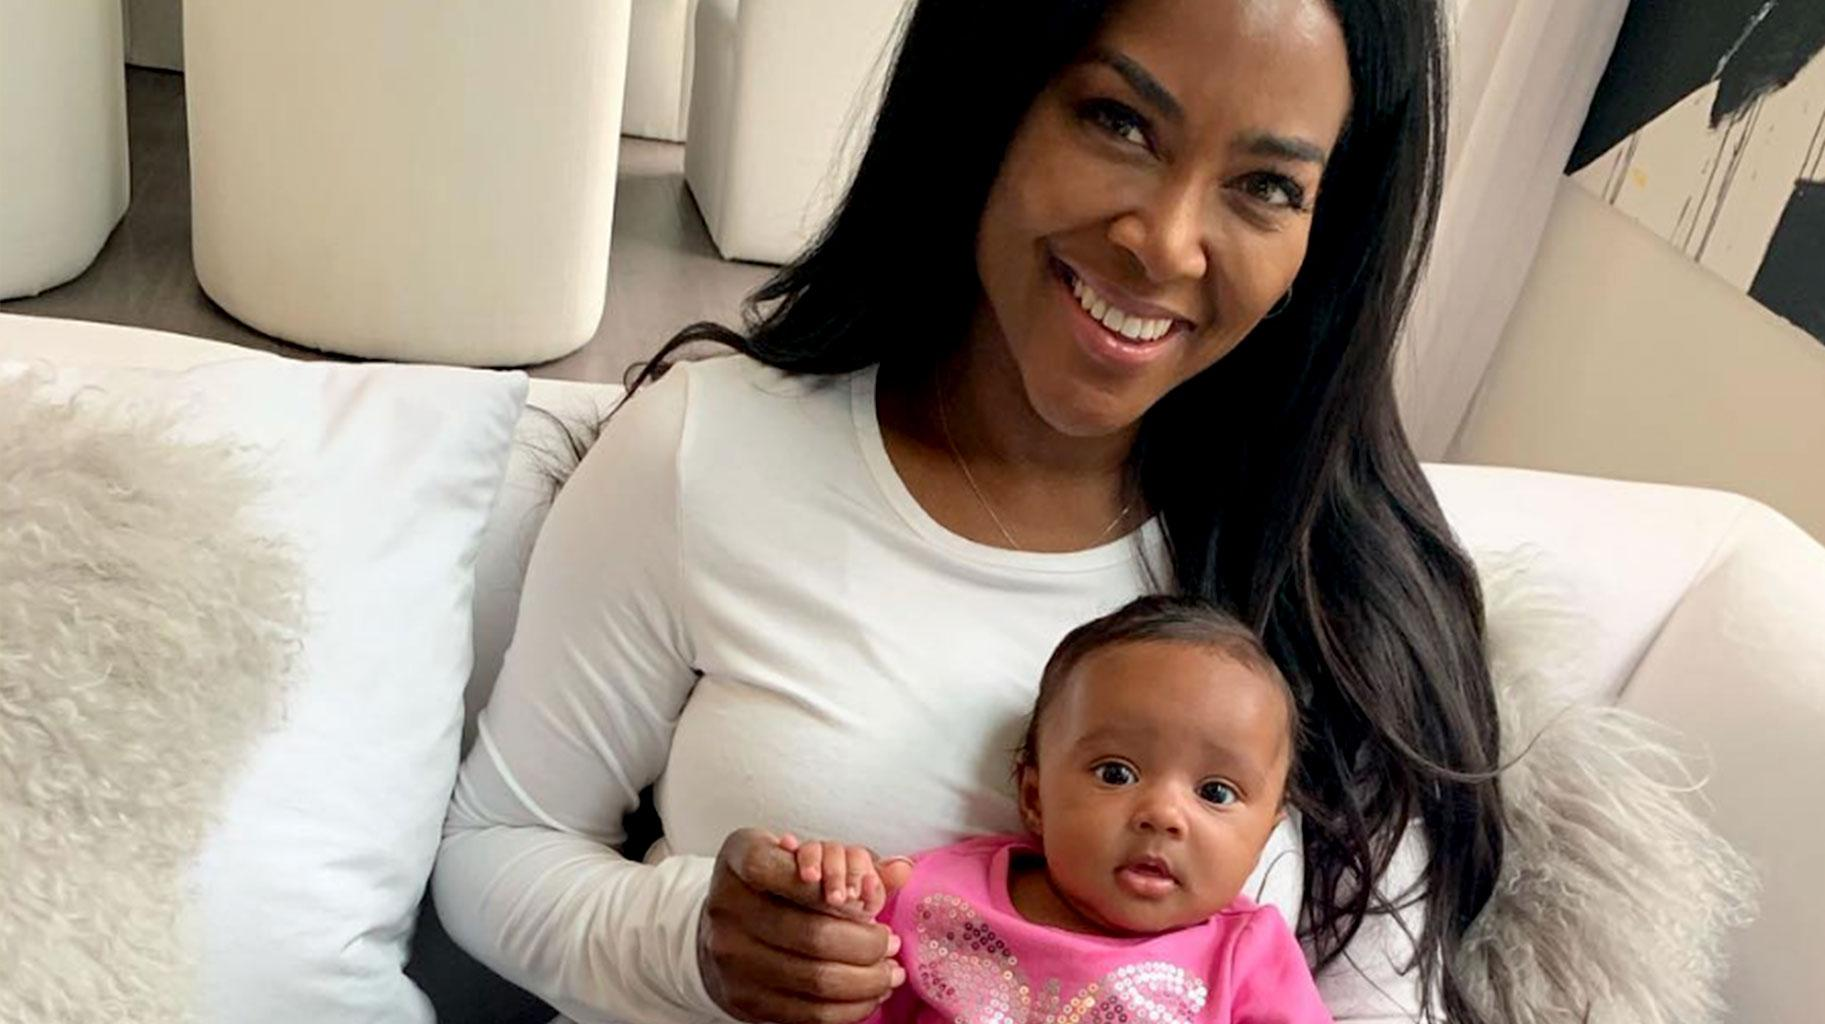 Kenya Moore Is Drop Dead Gorgeous With Baby Brooklyn In Her Arms - See New Pics From The Sheen Photoshoot